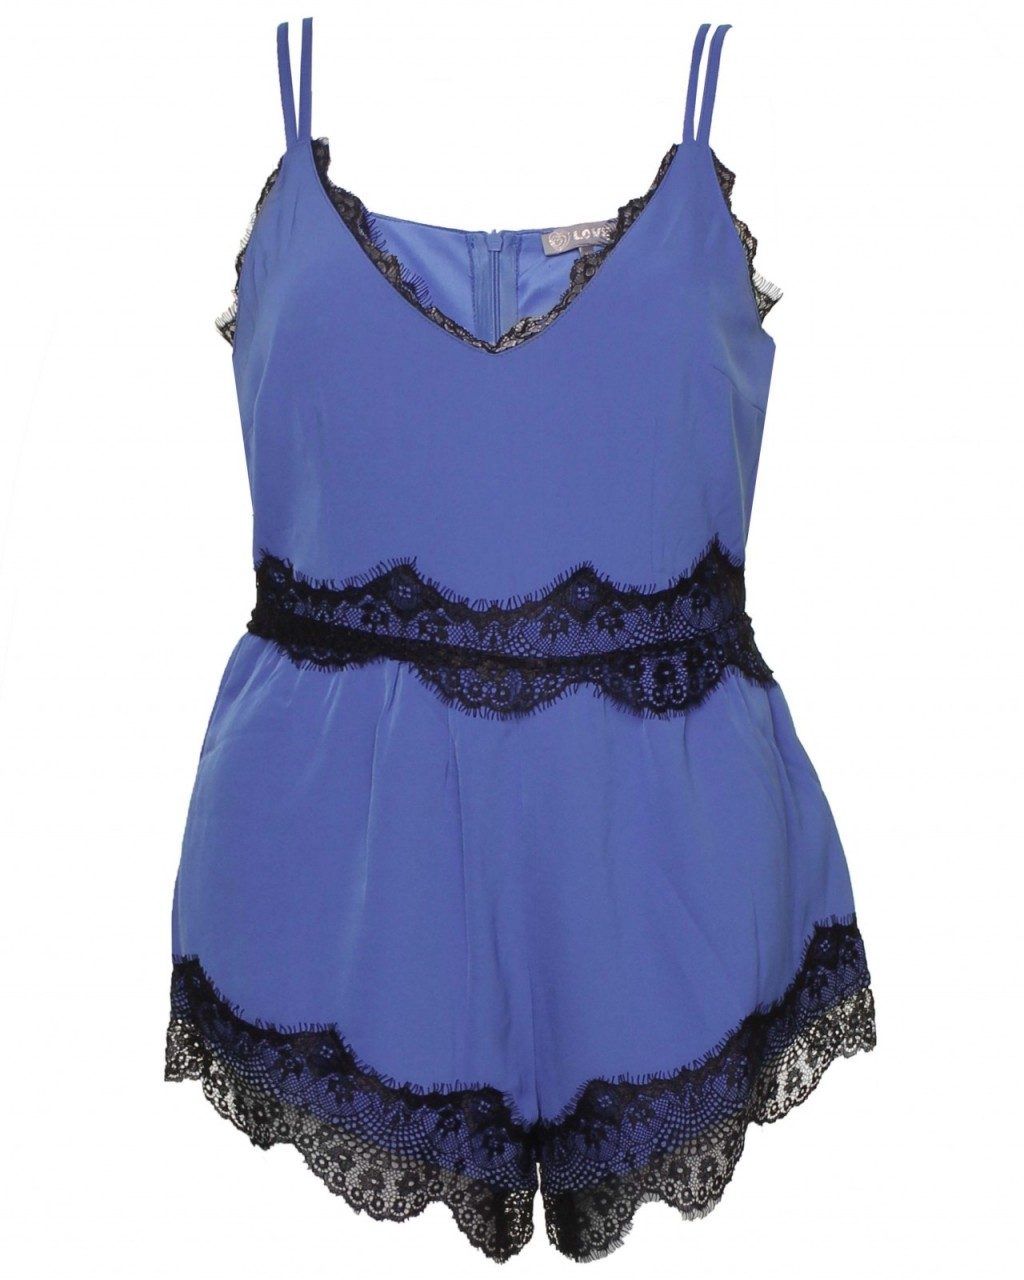 LOVE Cobalt Chiffon Playsuit With Lace Detail